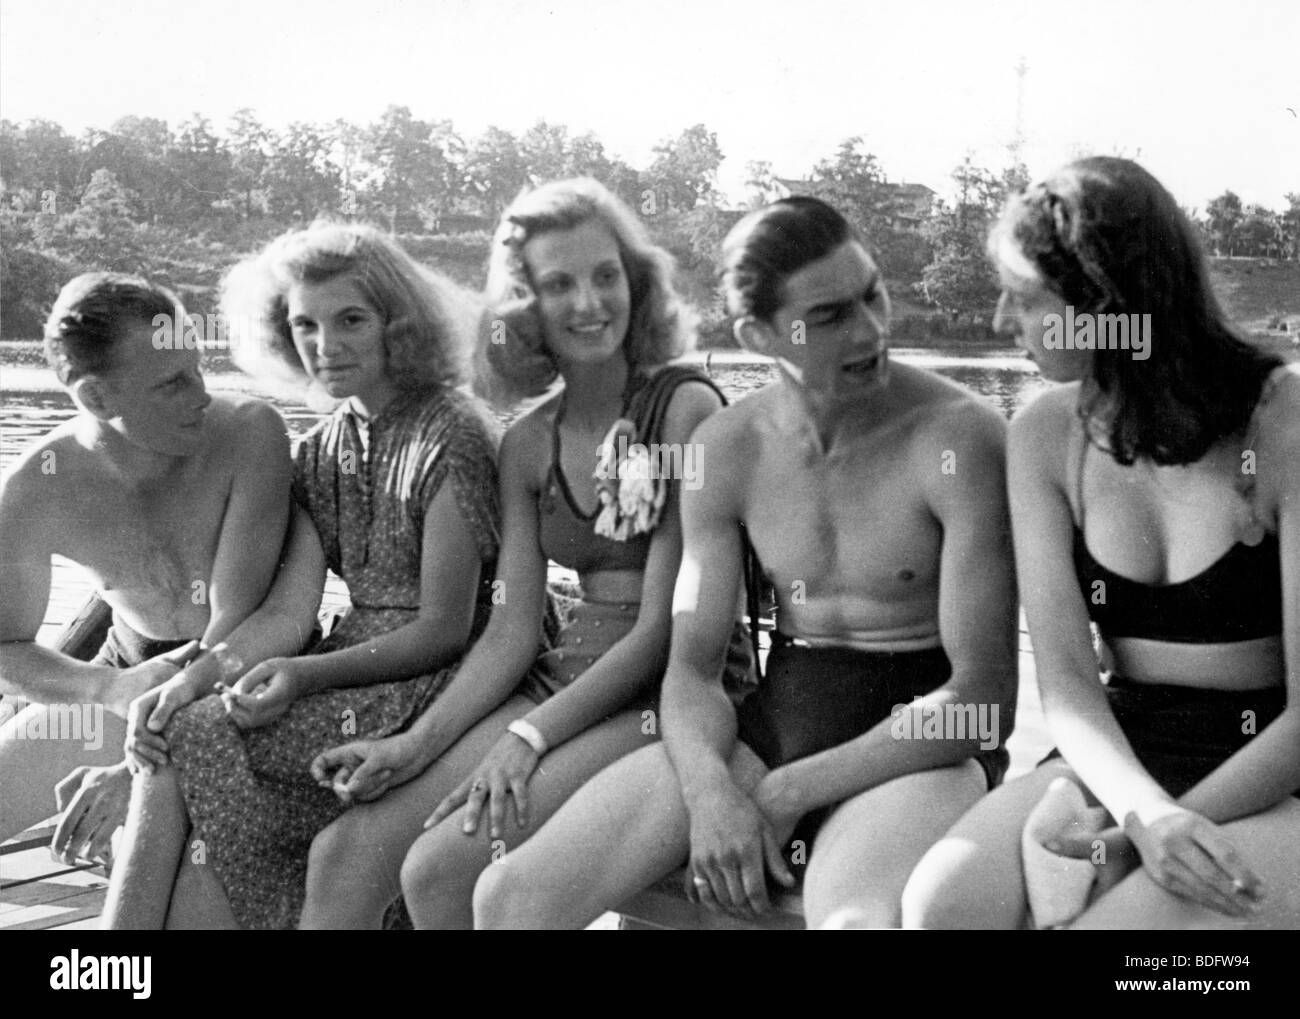 OCCUPIED GERMANY  1946 Off-duty British soldiers 'fratting' with German girls at a Berlin swimming poll - Stock Image